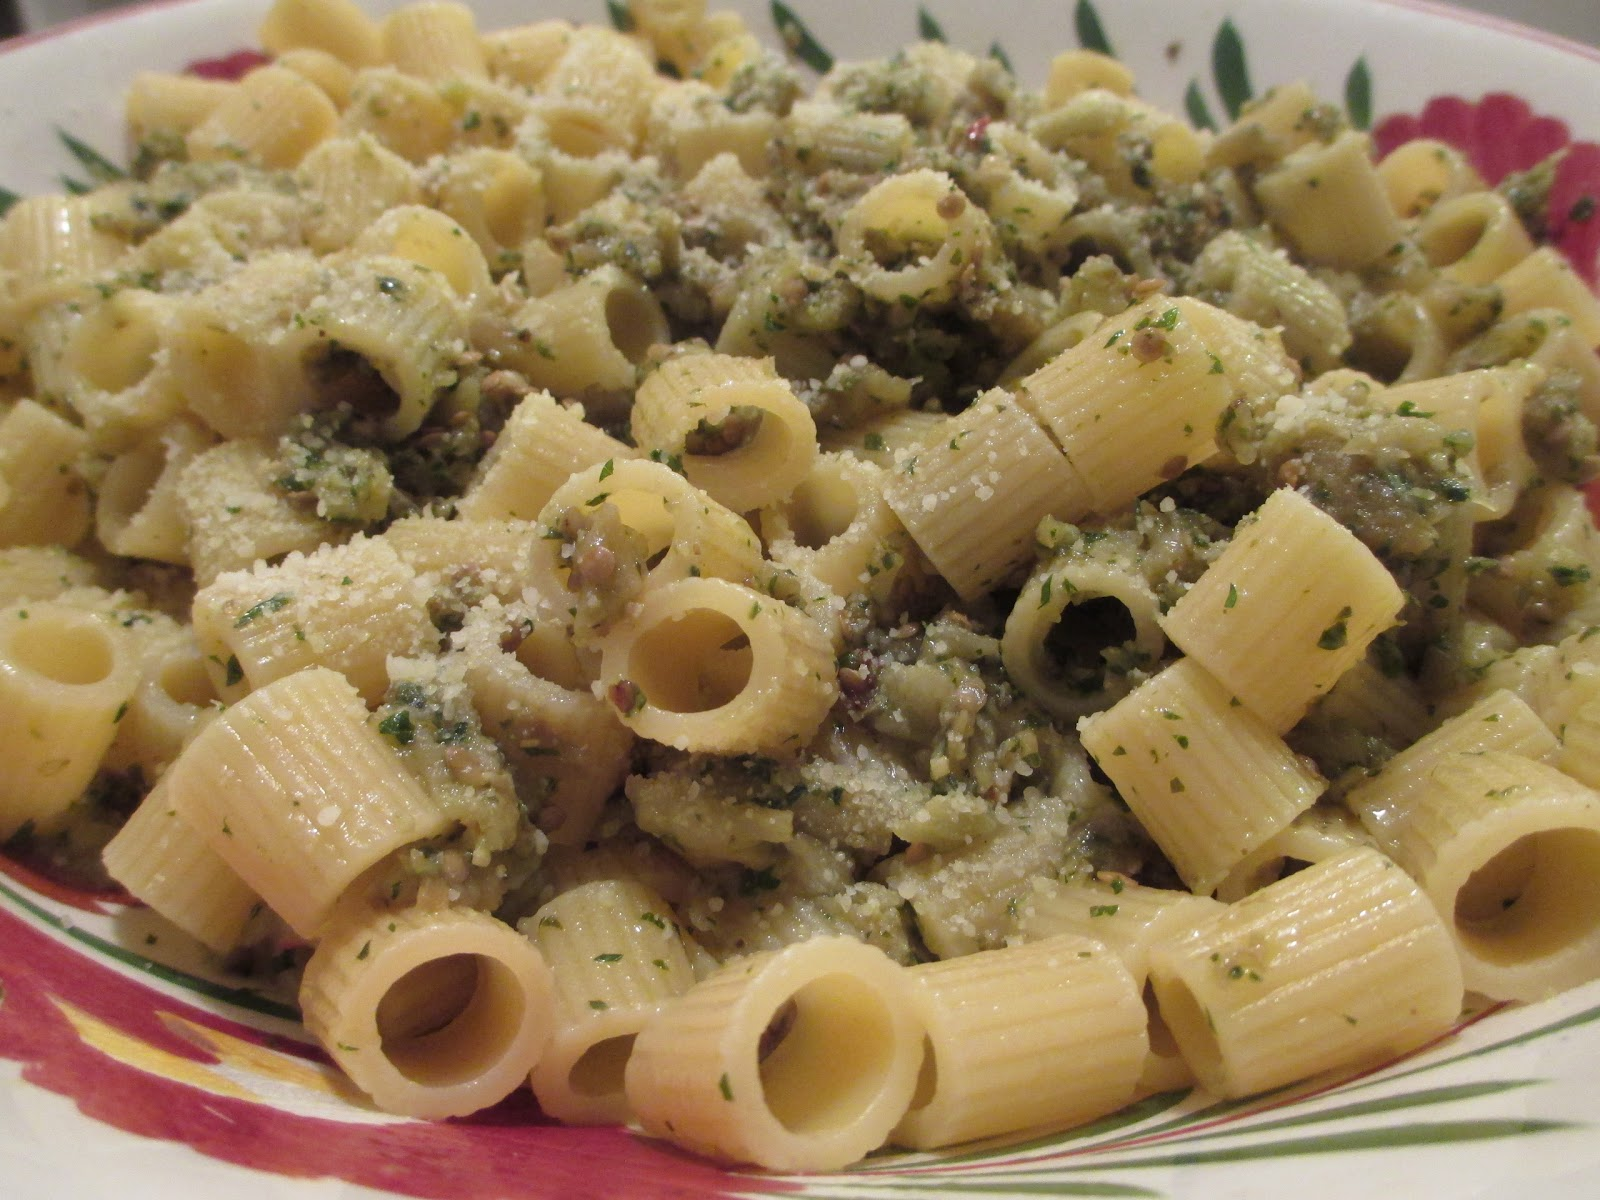 "So what are you making for dinner?"": Rigatoni Con Crema di Melanzane"